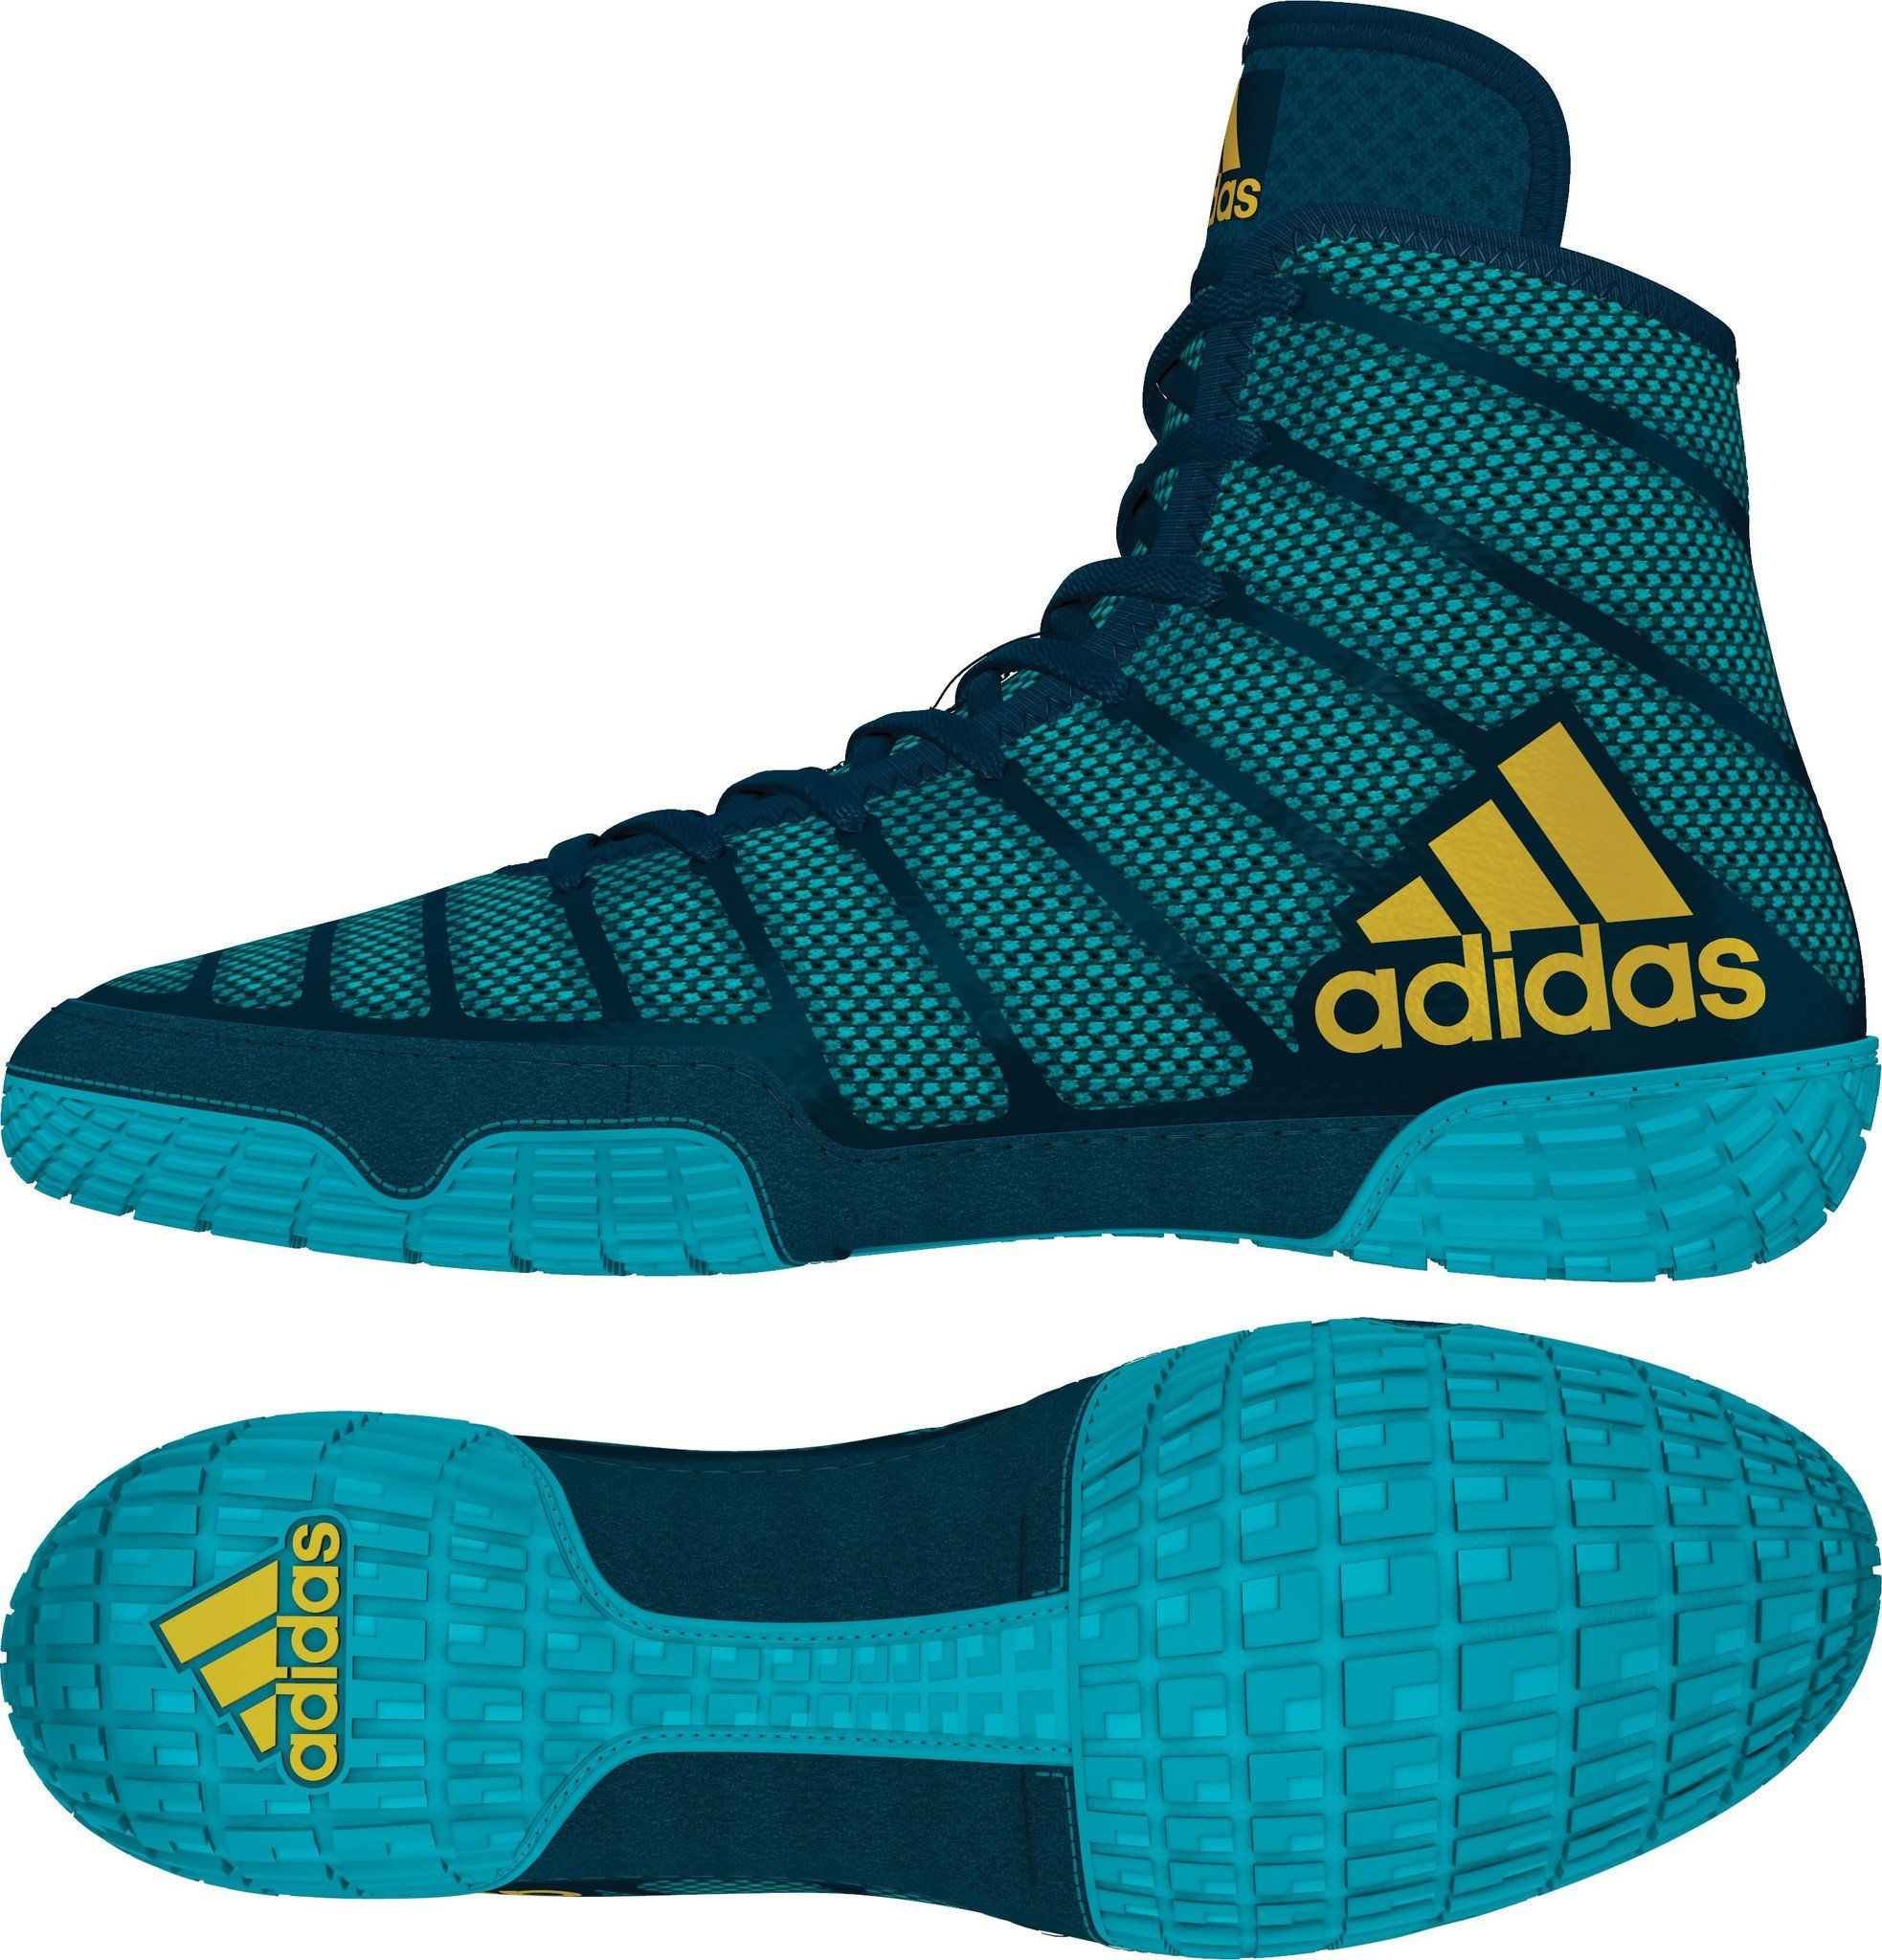 the latest 127fa 55f23 ADIDAS ADIZERO VARNER 2 WRESTLING SHOES (4 COLOR OPTIONS)